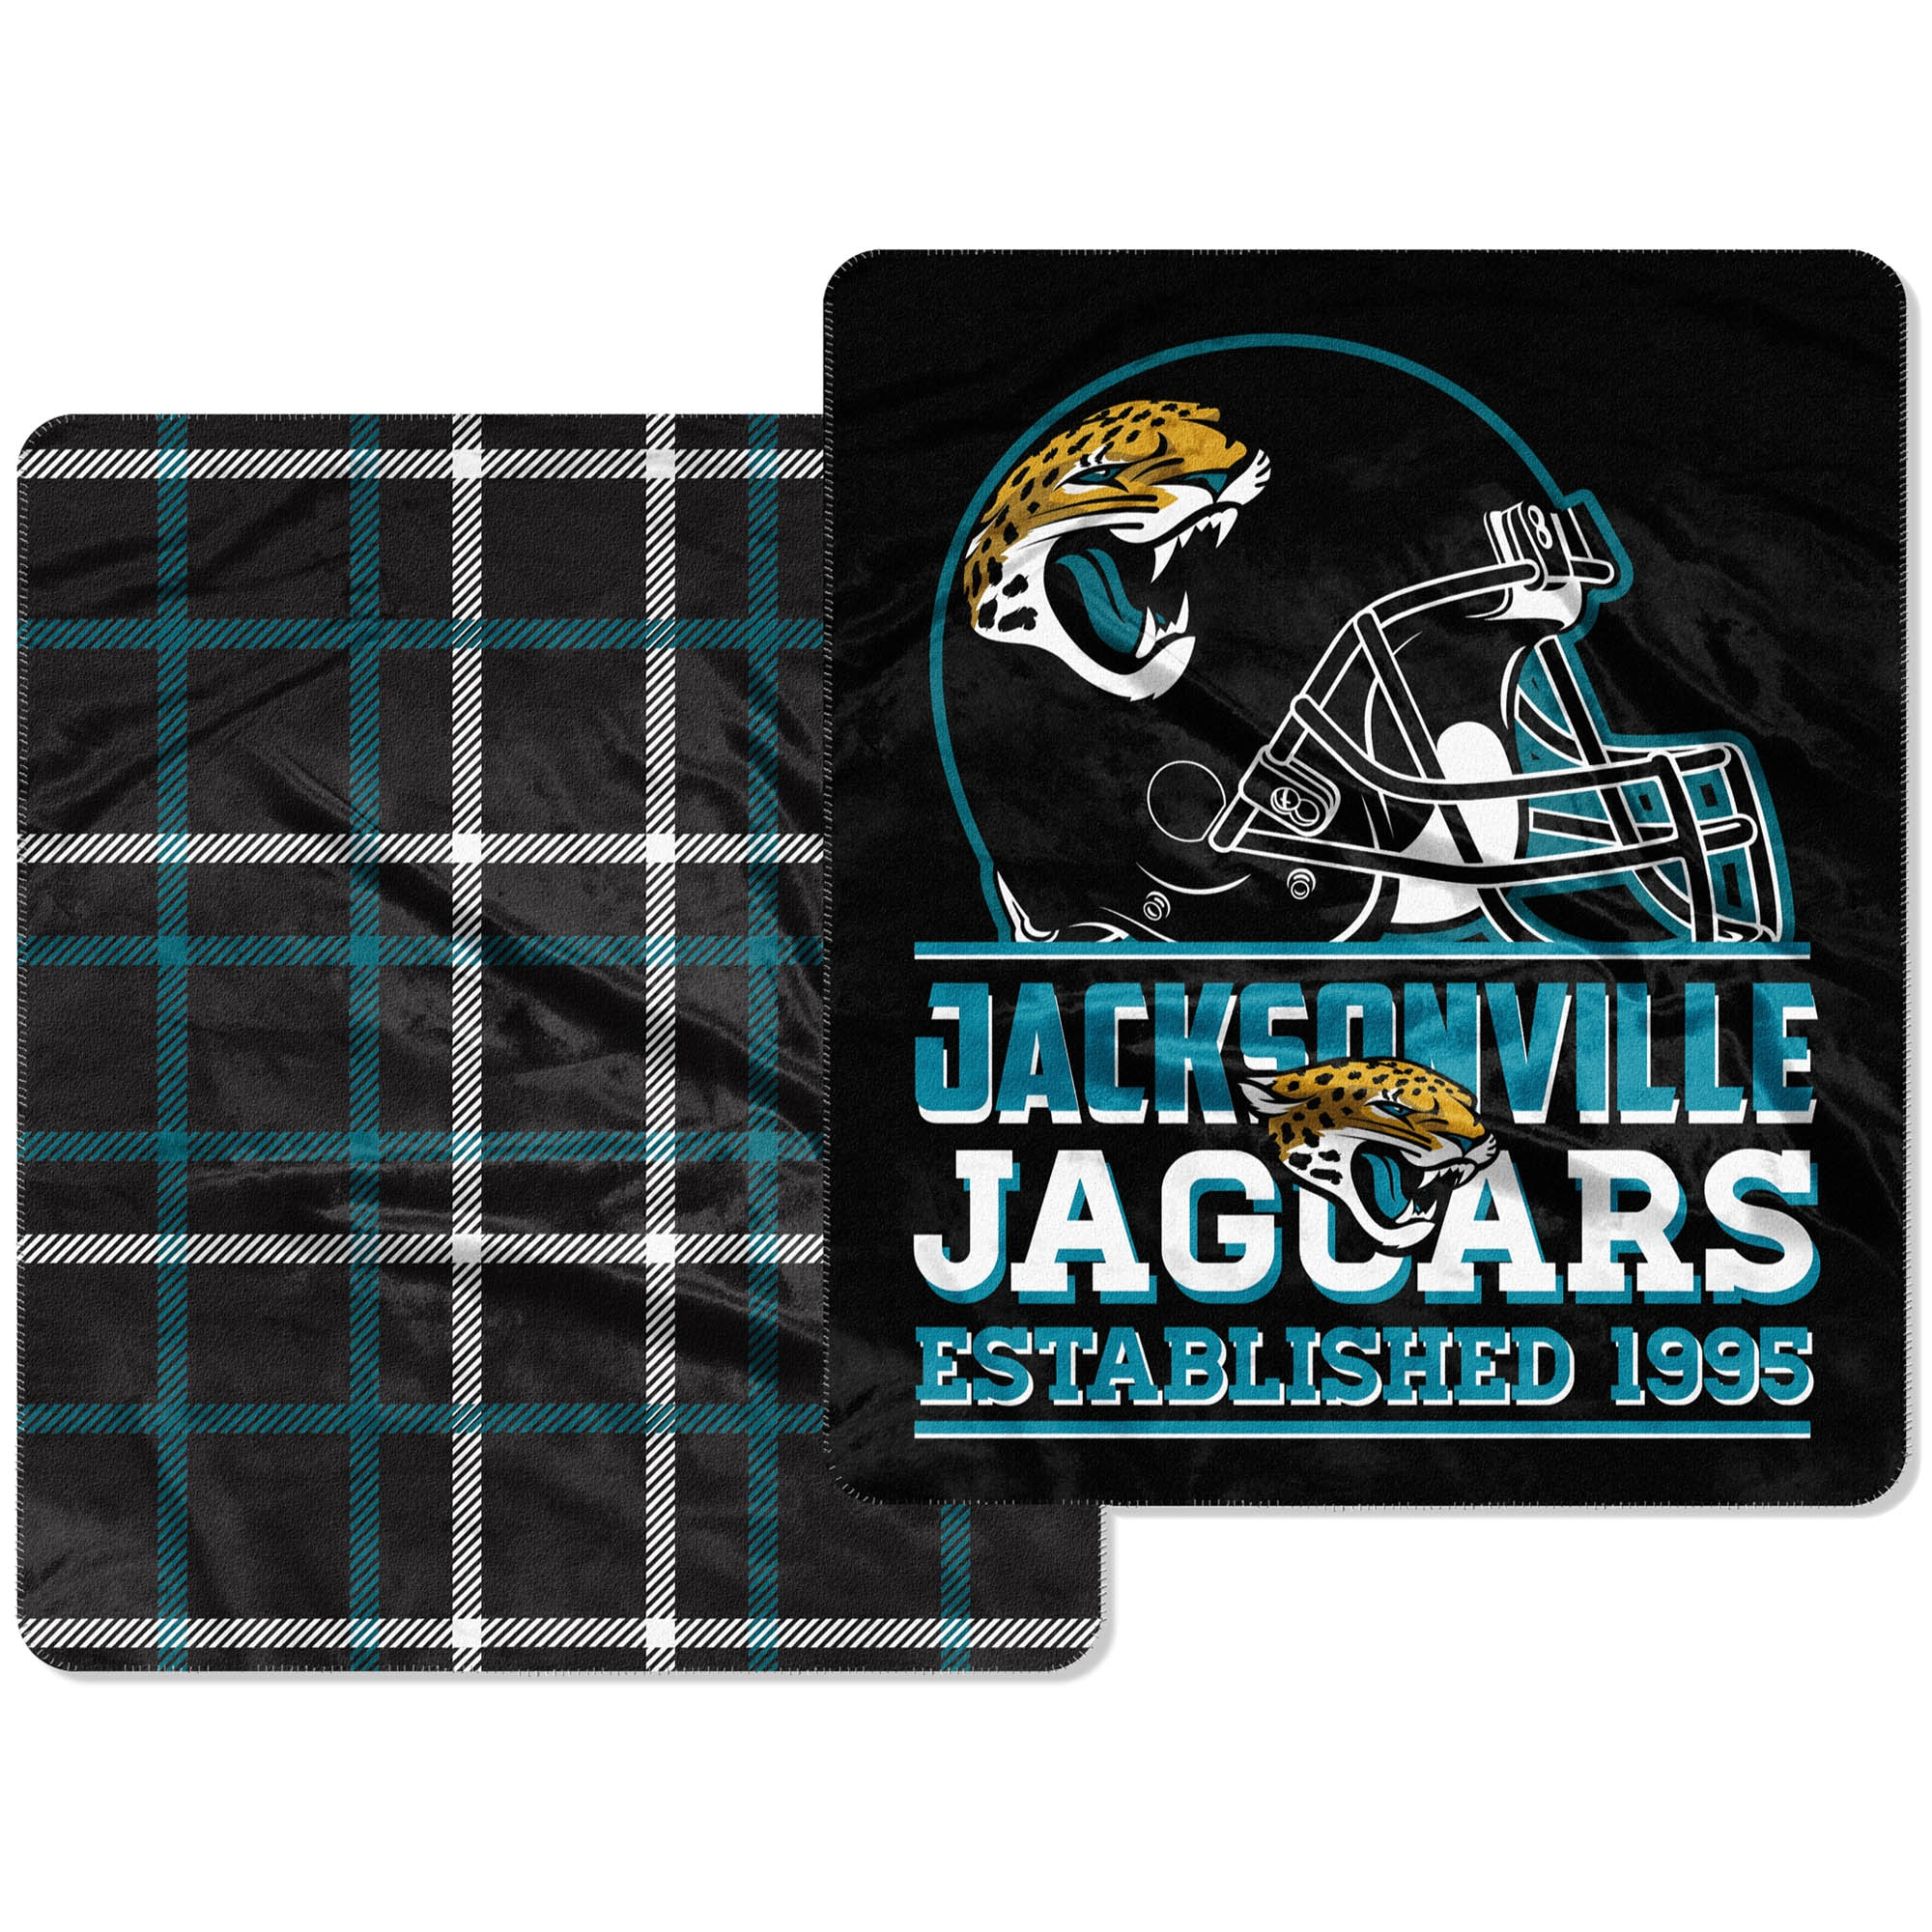 Jacksonville Jaguars The Northwest Company Home Field Cloud 60'' x 70'' Double-Sided Plush Throw Blanket